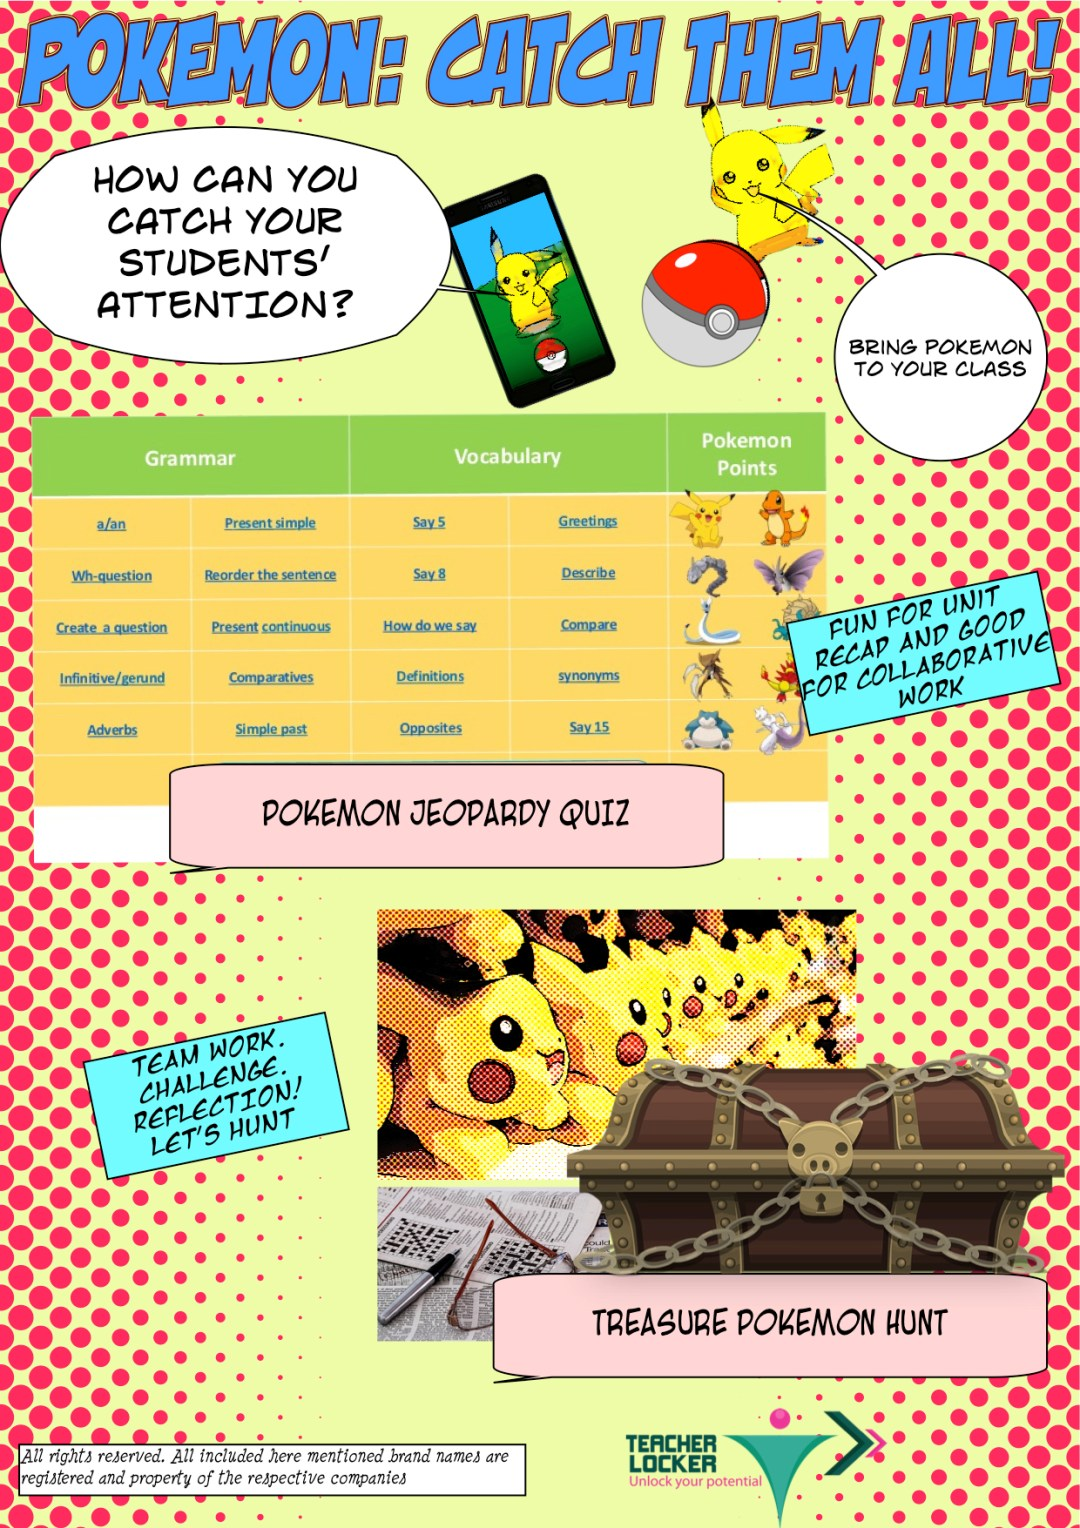 How to use pokemon go in the classroom